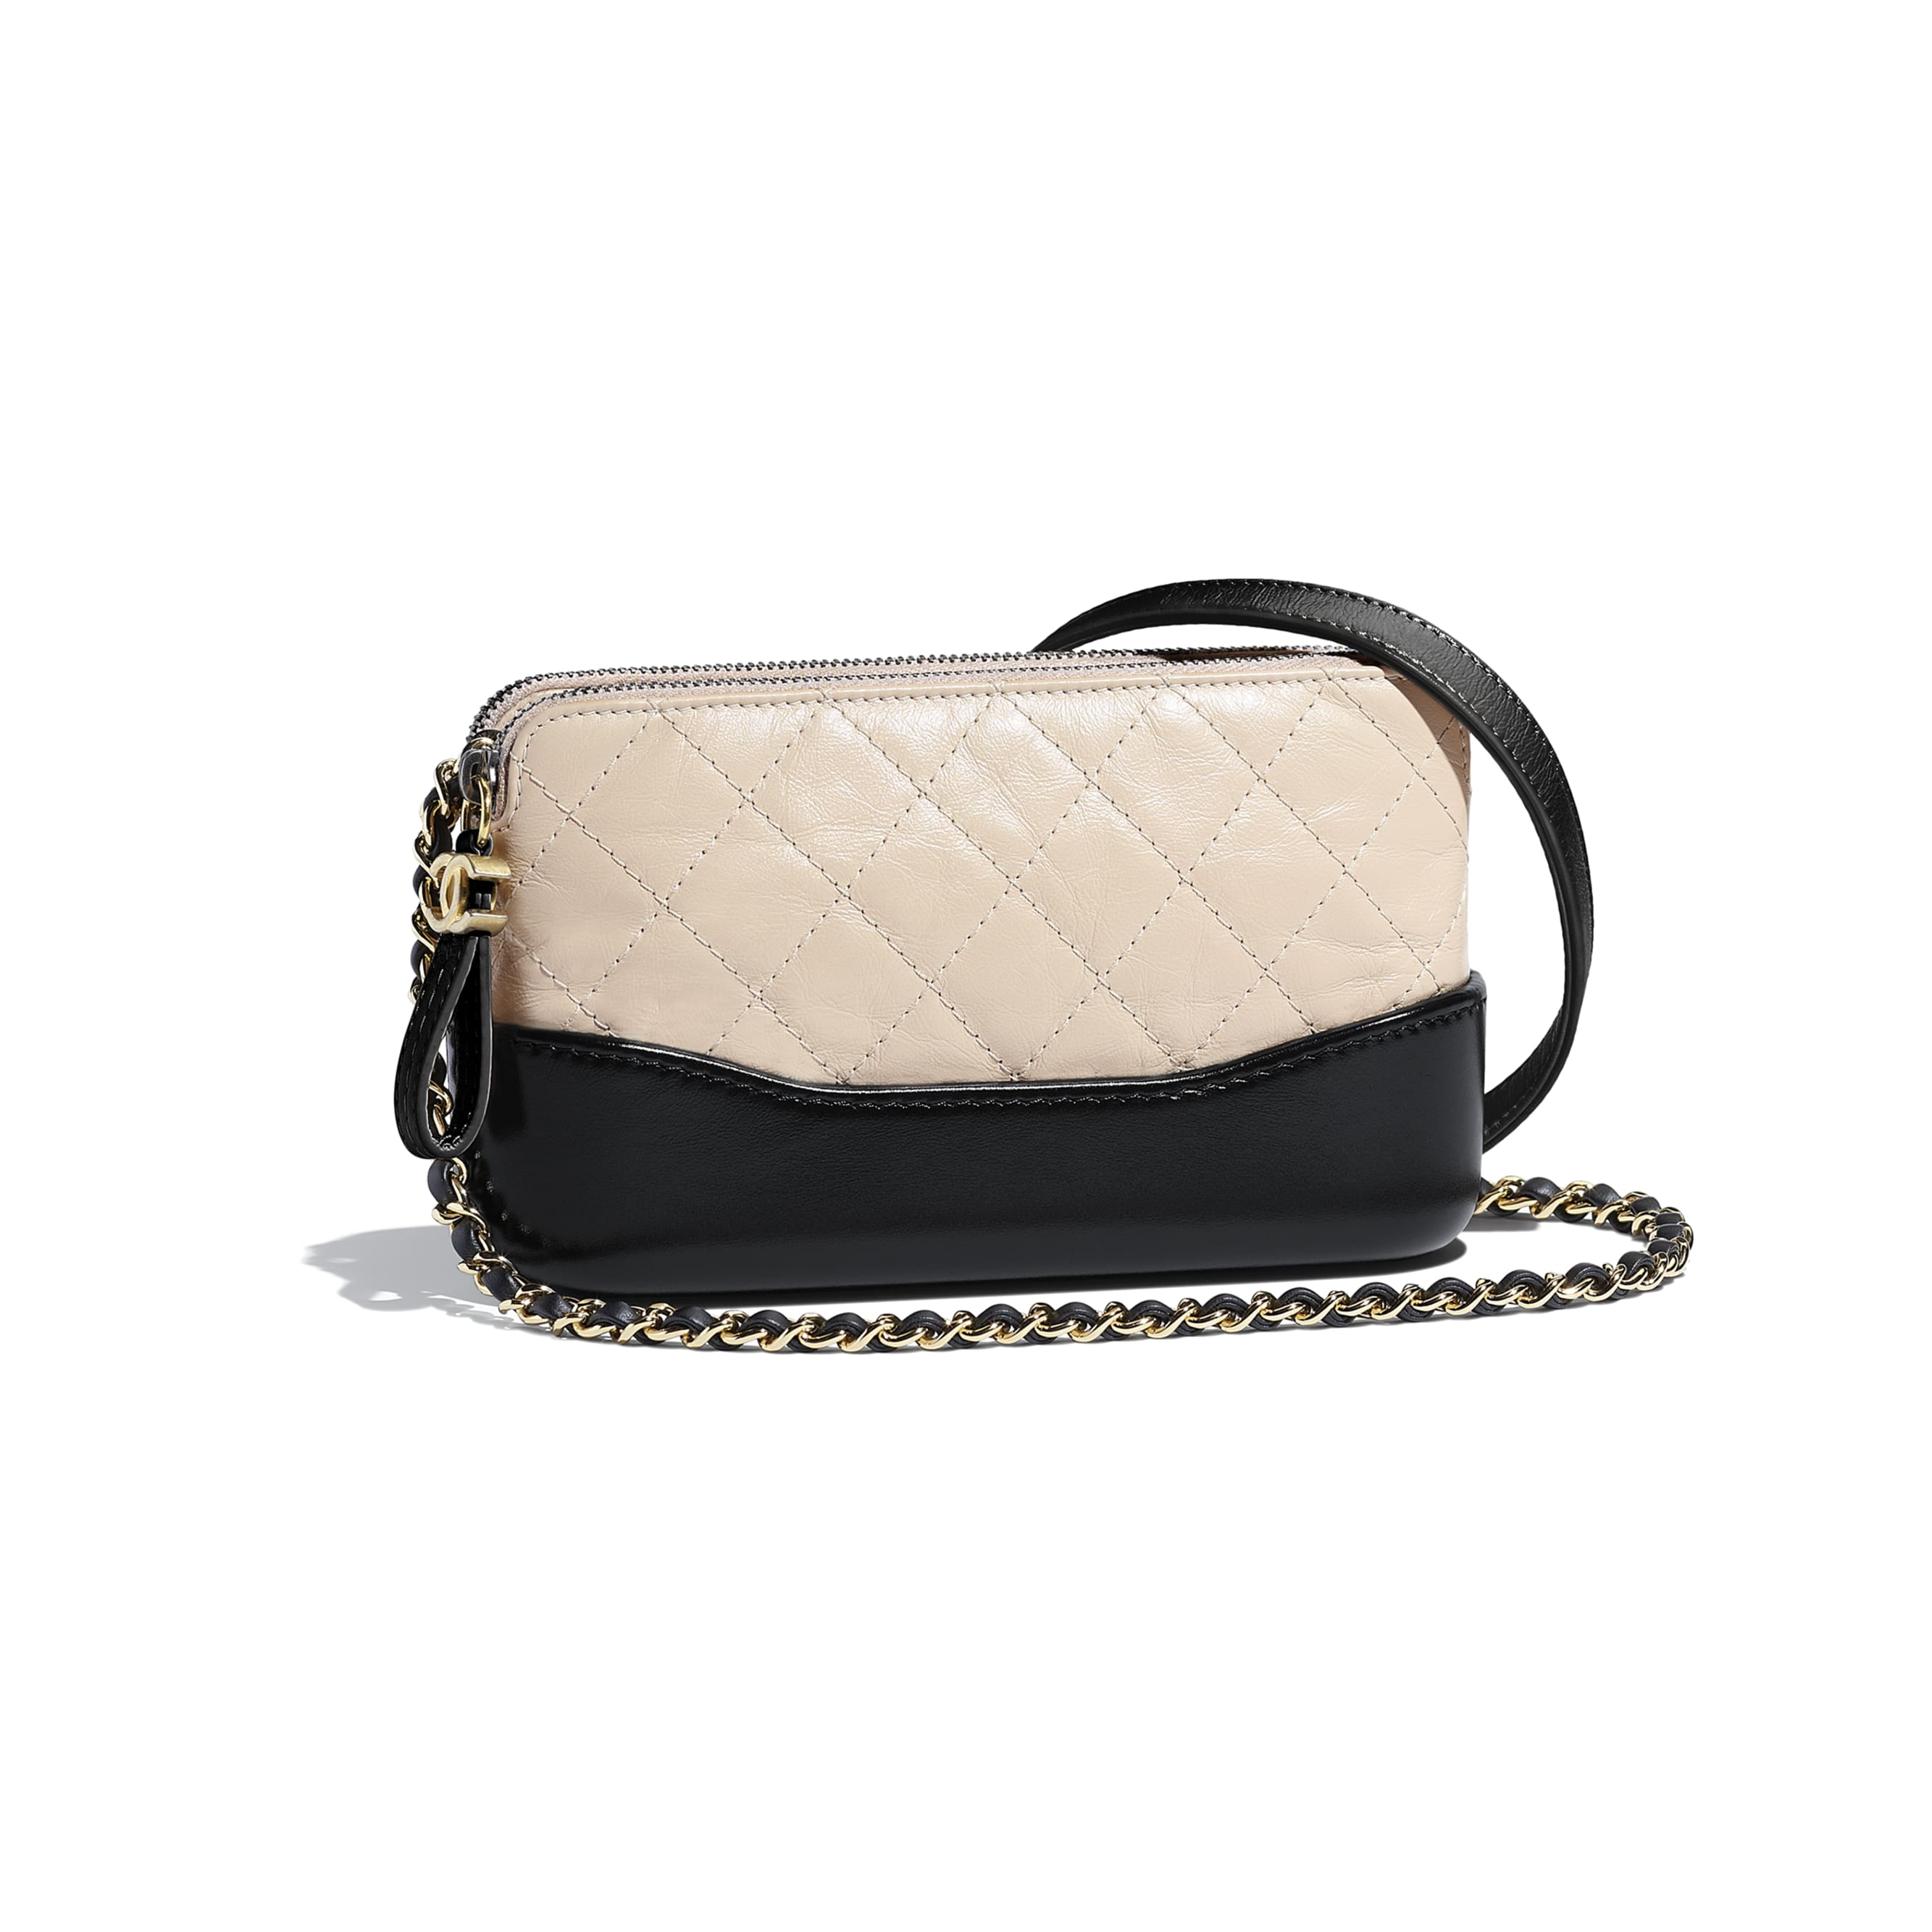 Clutch With Chain - Beige & Black - Aged Calfskin, Smooth Calfskin, Gold-Tone, Silver-Tone & Ruthenium-Finish Metal - CHANEL - Default view - see standard sized version